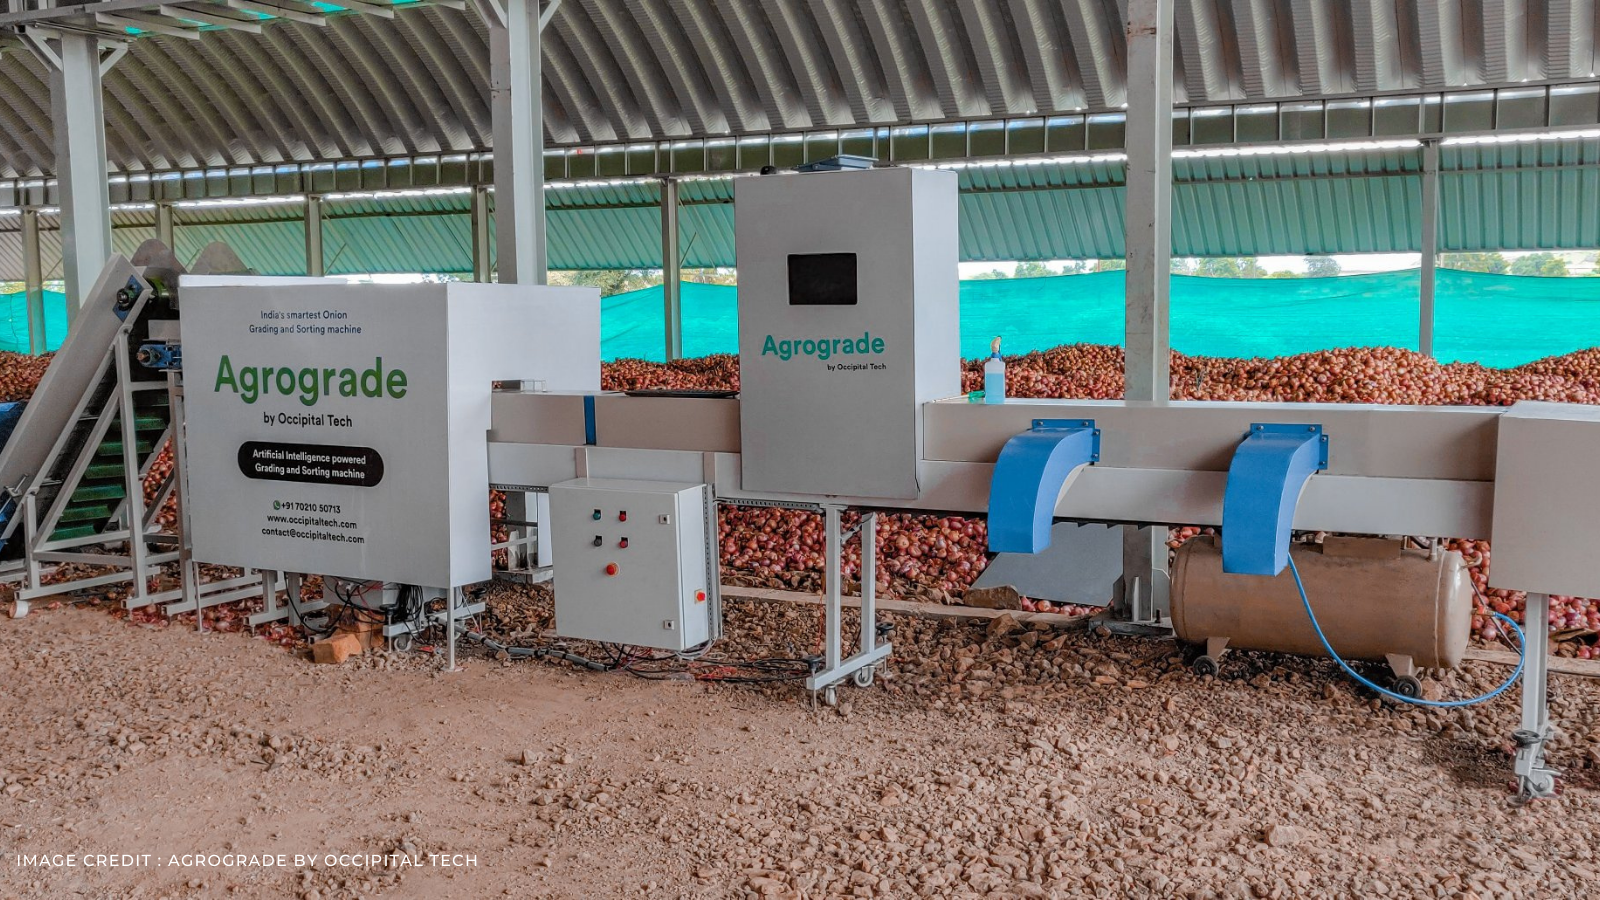 Read more about the article Agrograde – Agritech Startup aims to add transparency to India's Agriculture